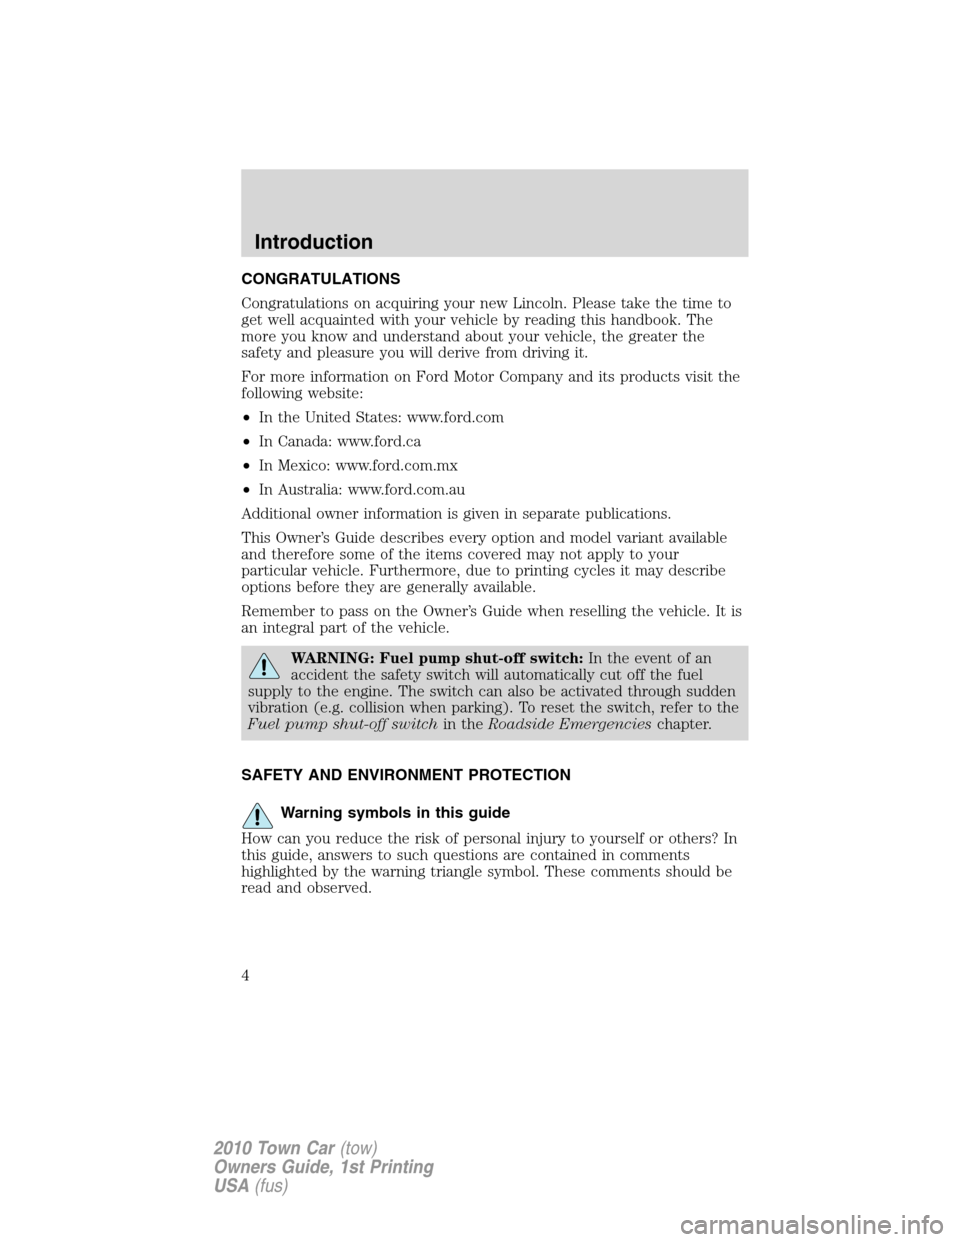 LINCOLN TOWN CAR 2010  Owners Manual, Page 4